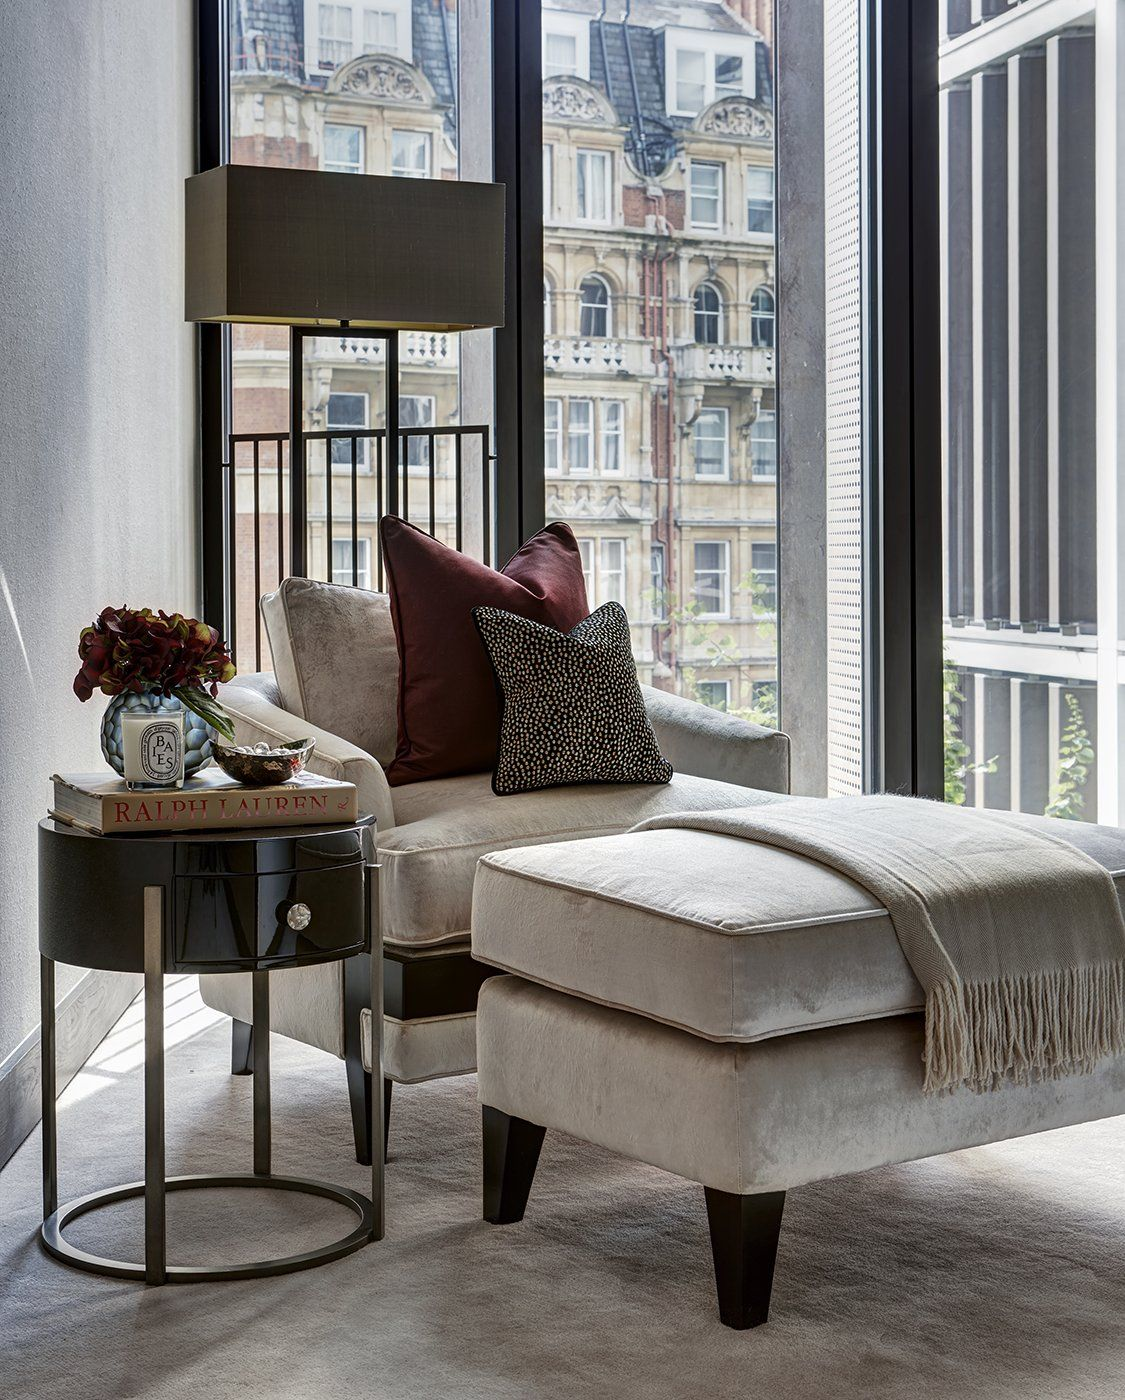 1 Bedroom Apartments In London